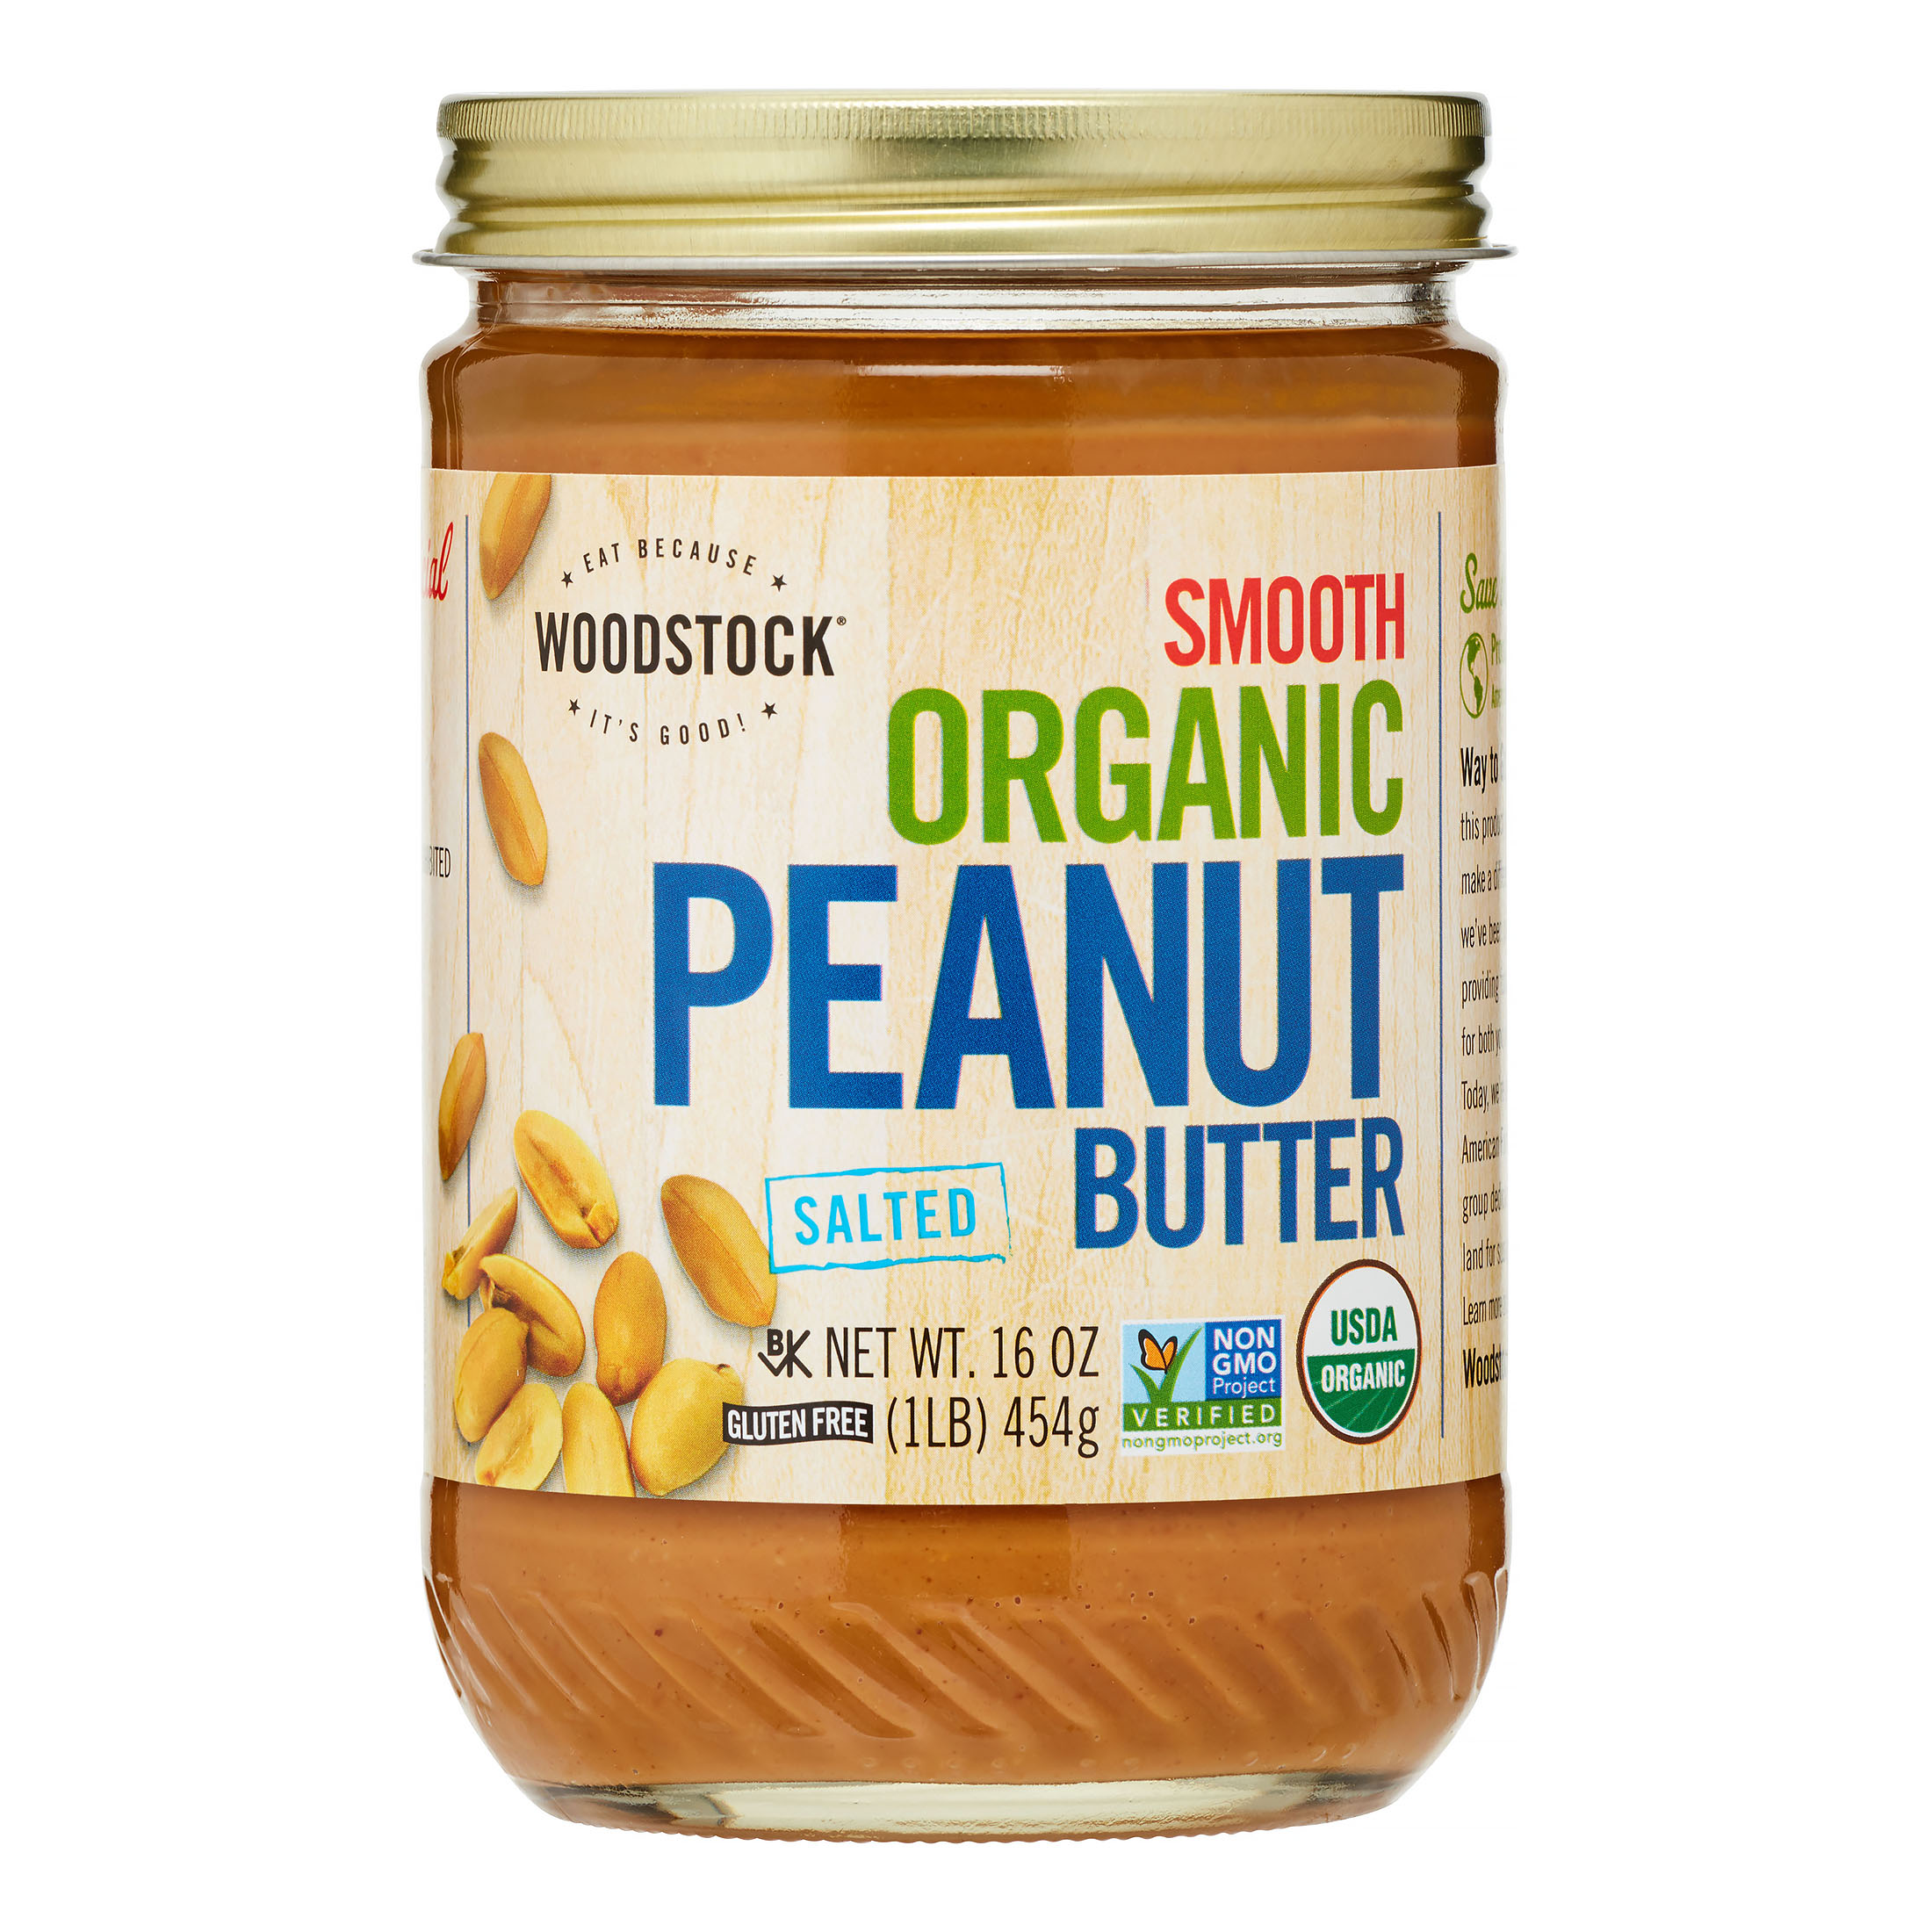 Woodstock Smooth Organic Peanut Butter, 16 Oz, 1 Count